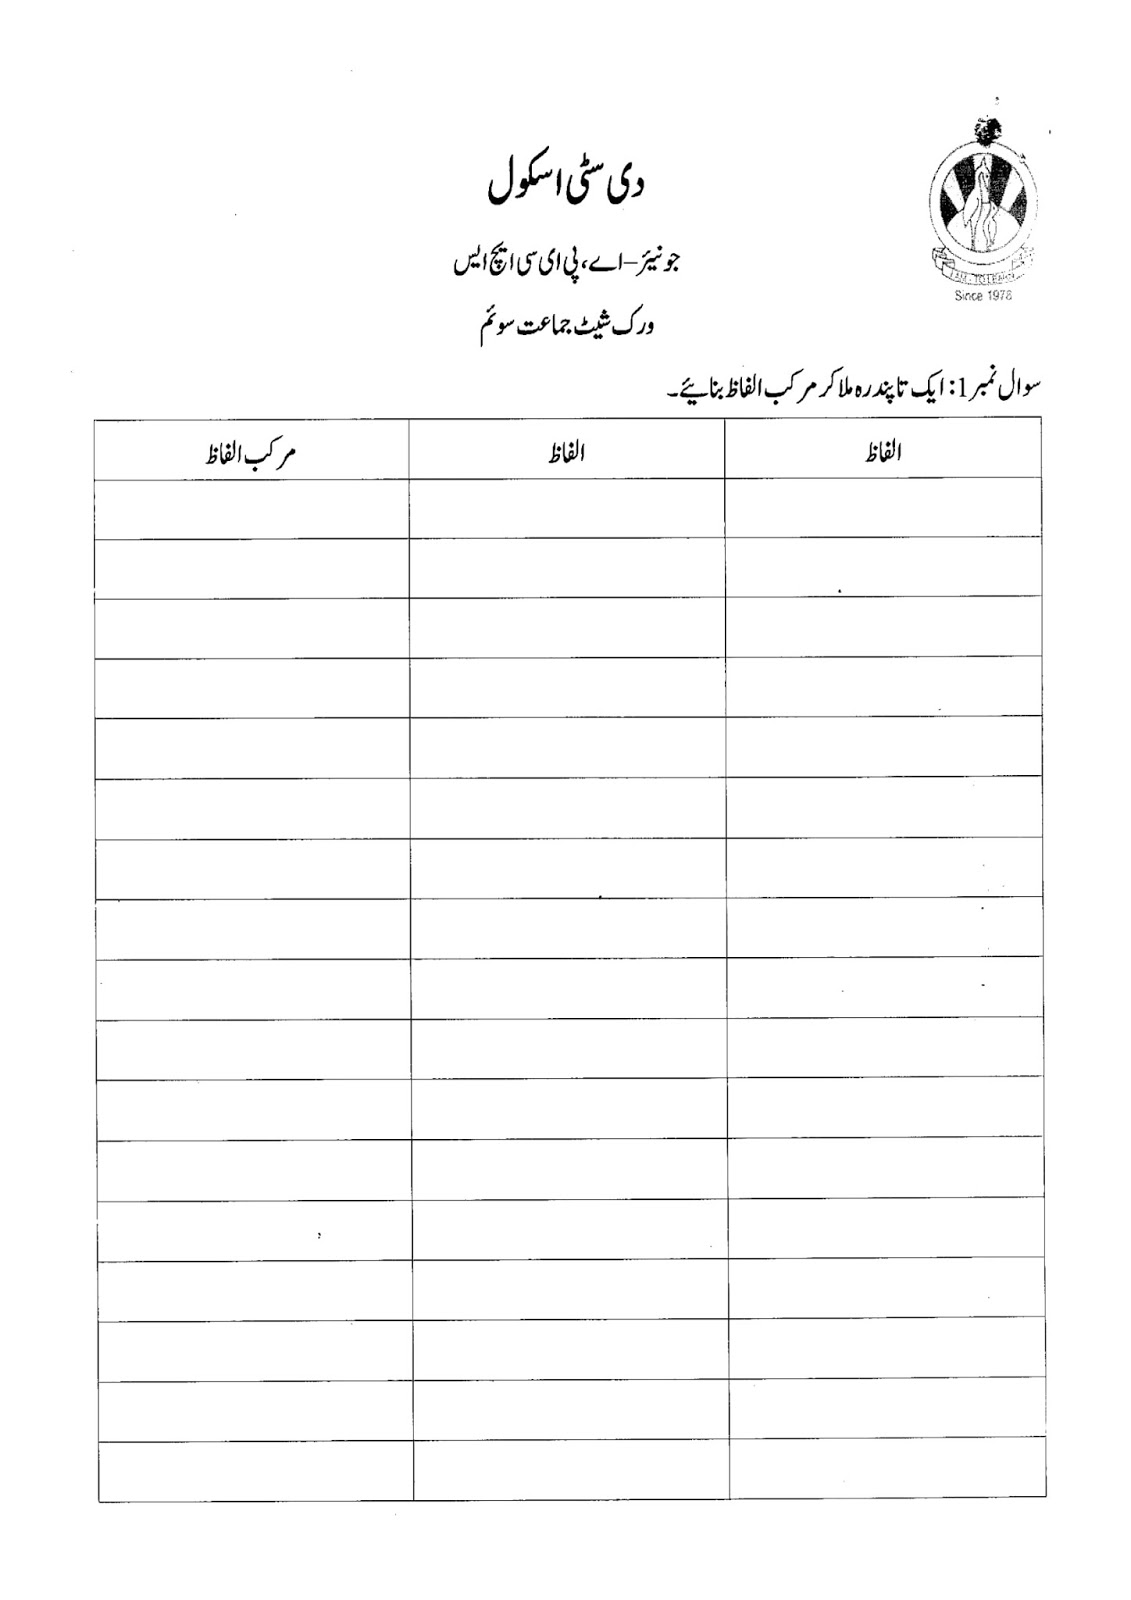 Urdu Worksheet Printable